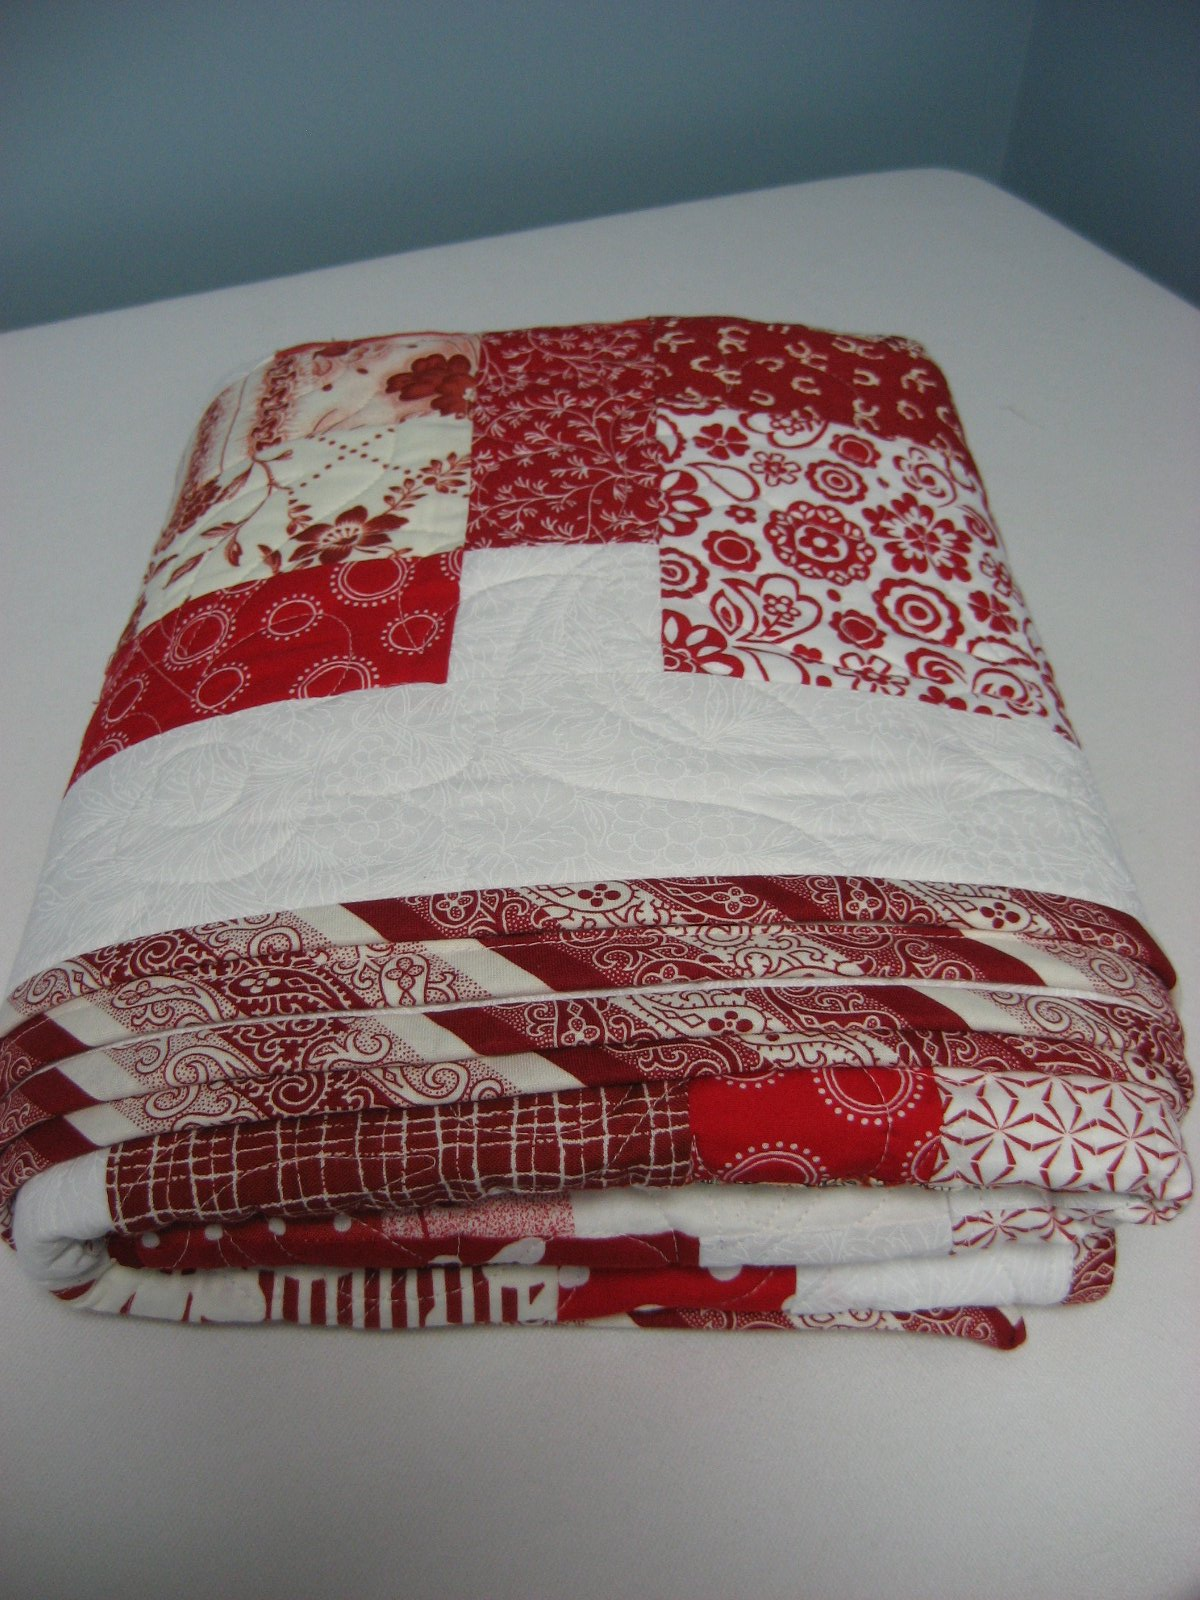 Hooked on Needles: Red and White Quilt ~ A Christmas Gift